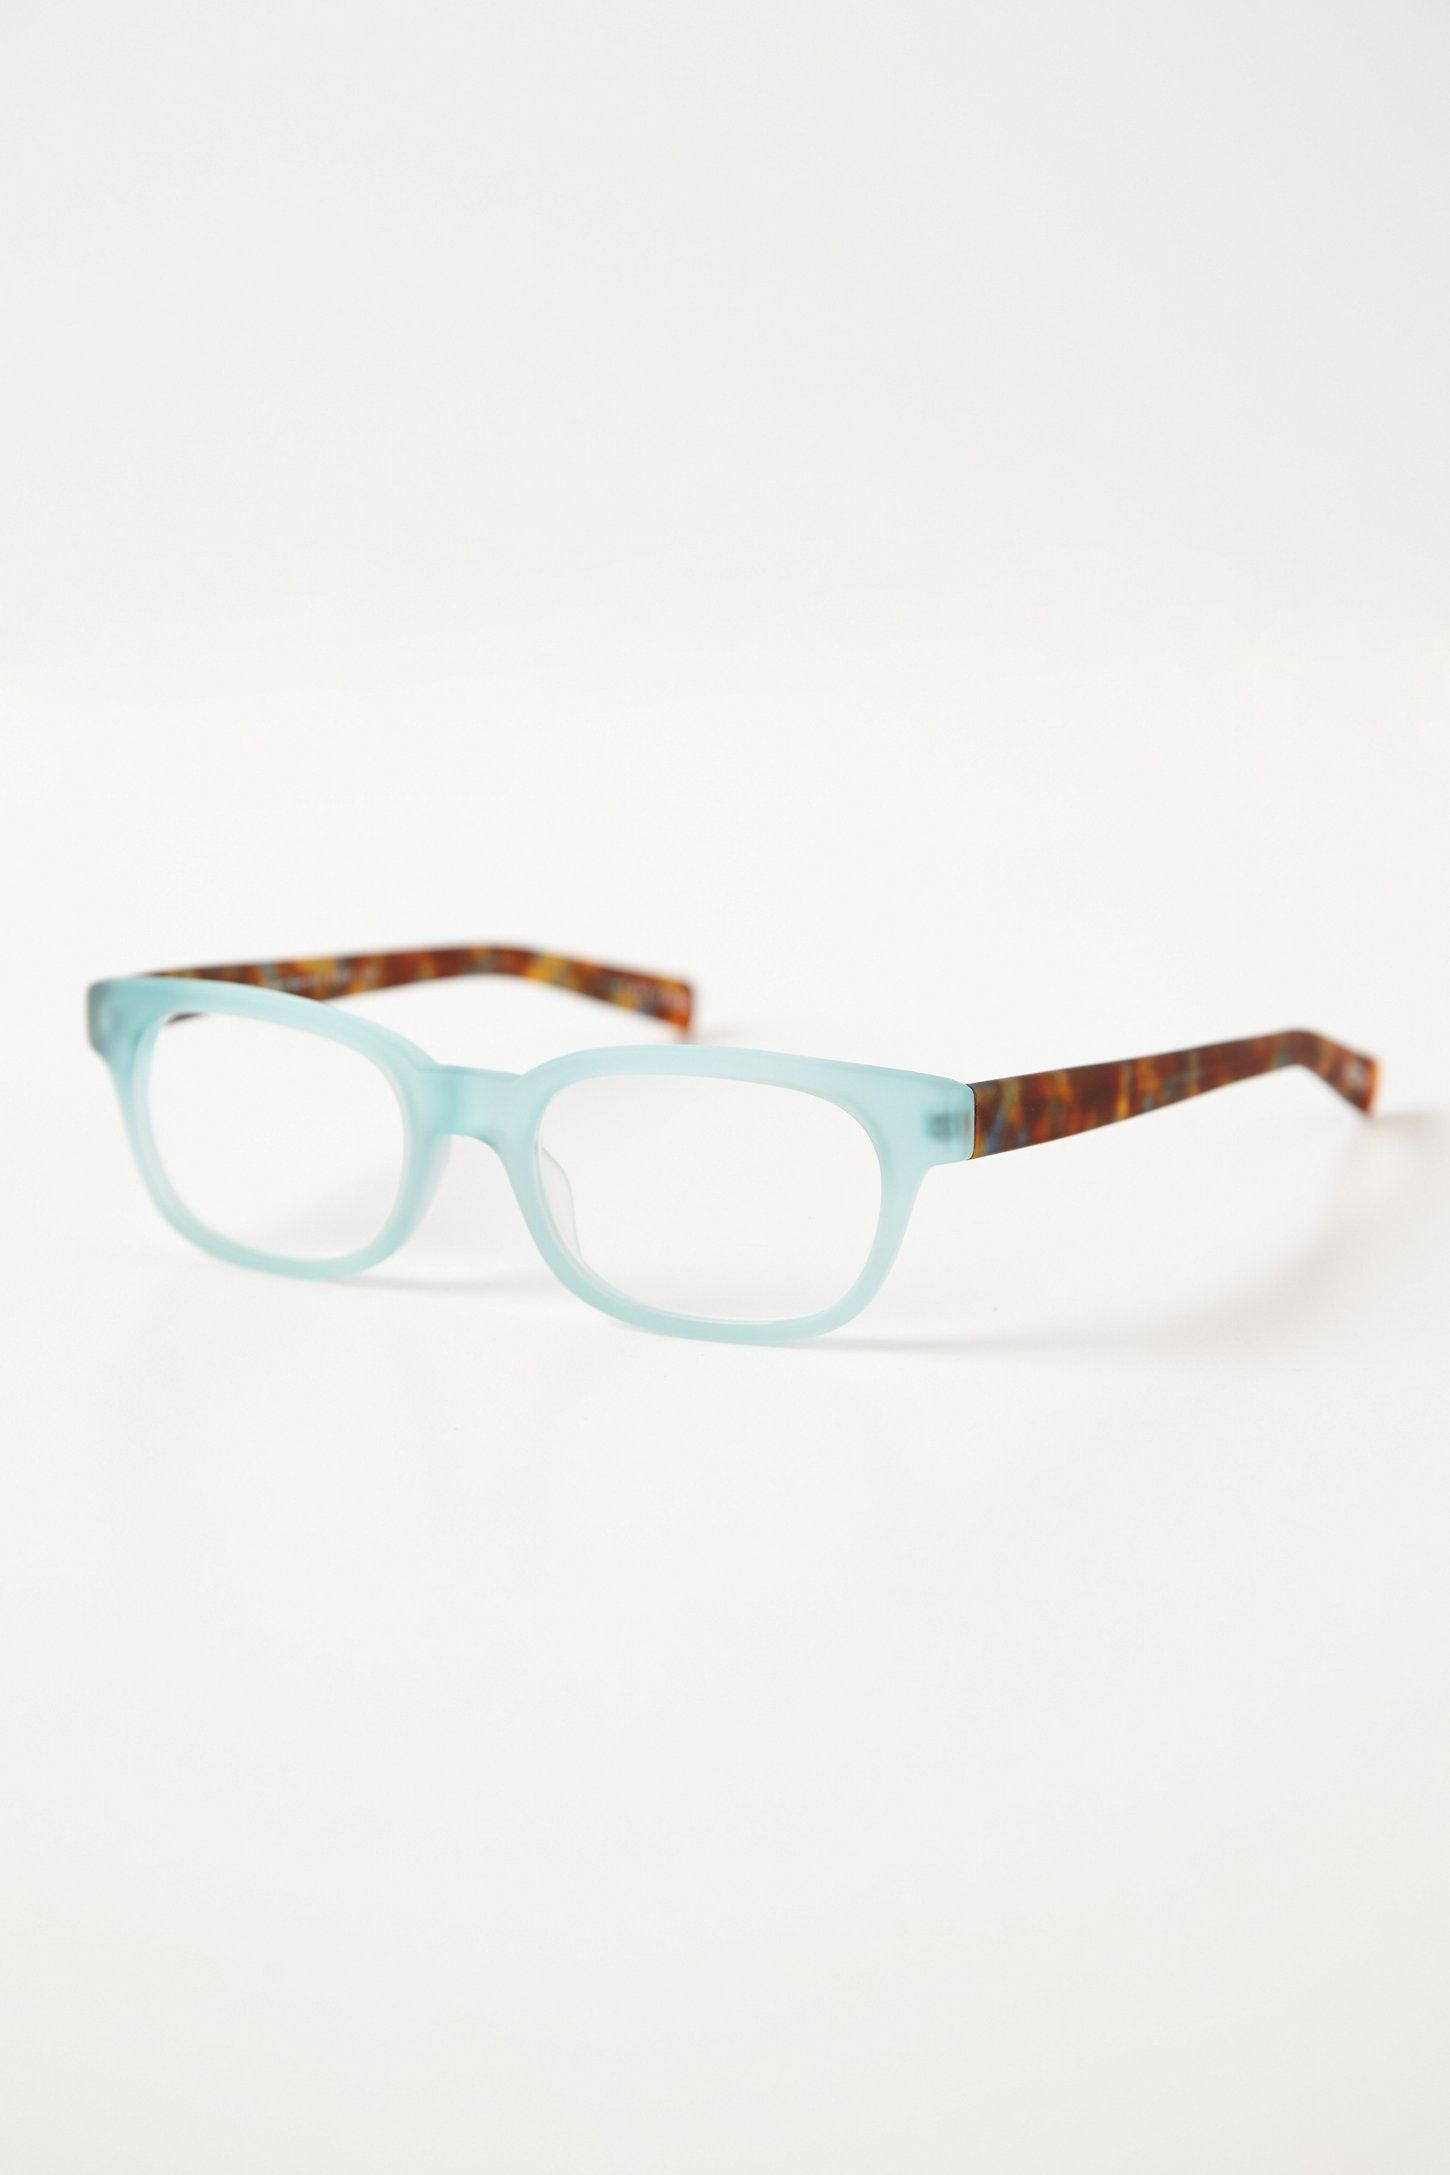 Frosted Tort Reading Gles Anthropologie Put Prescription Lenses In These